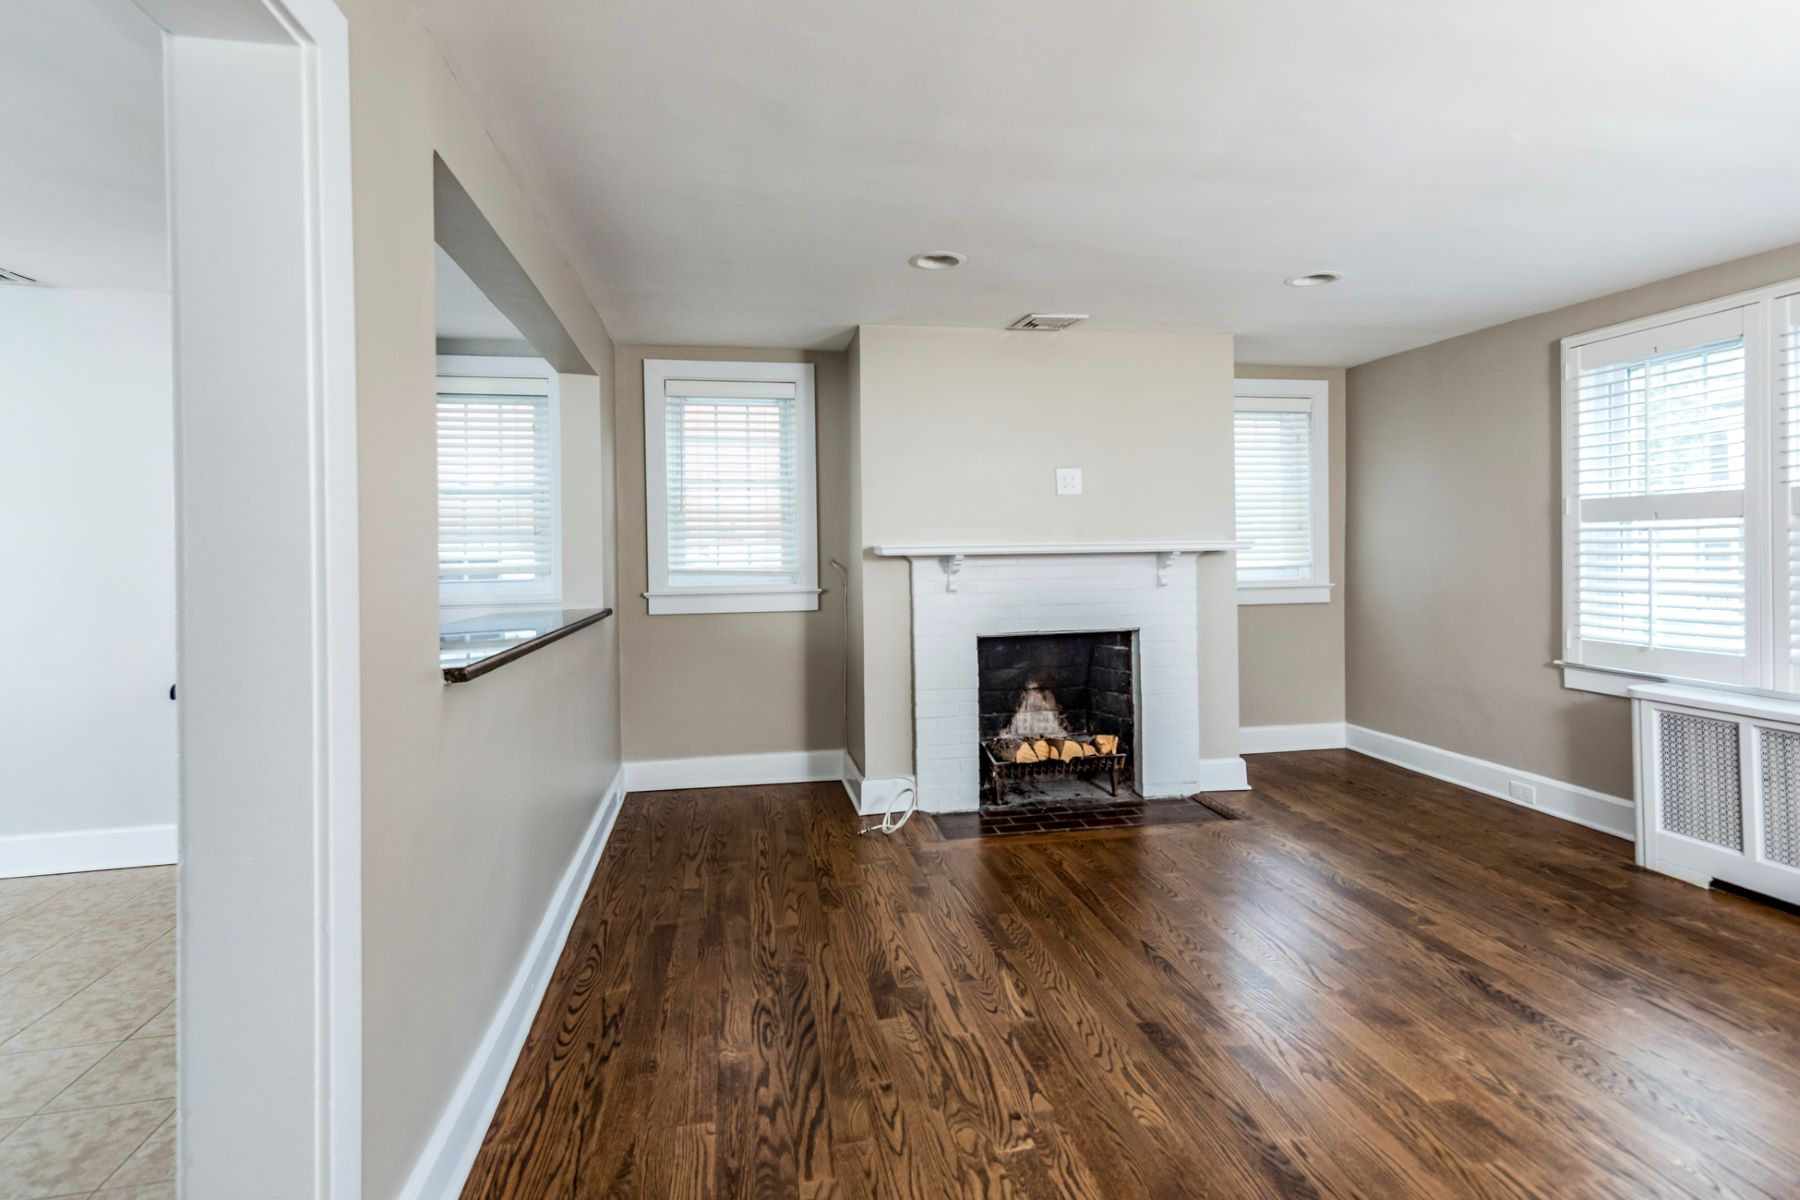 Additional photo for property listing at Location, Location, Location! 20 Witherspoon Street Apartment 1, Princeton, New Jersey 08542 United States